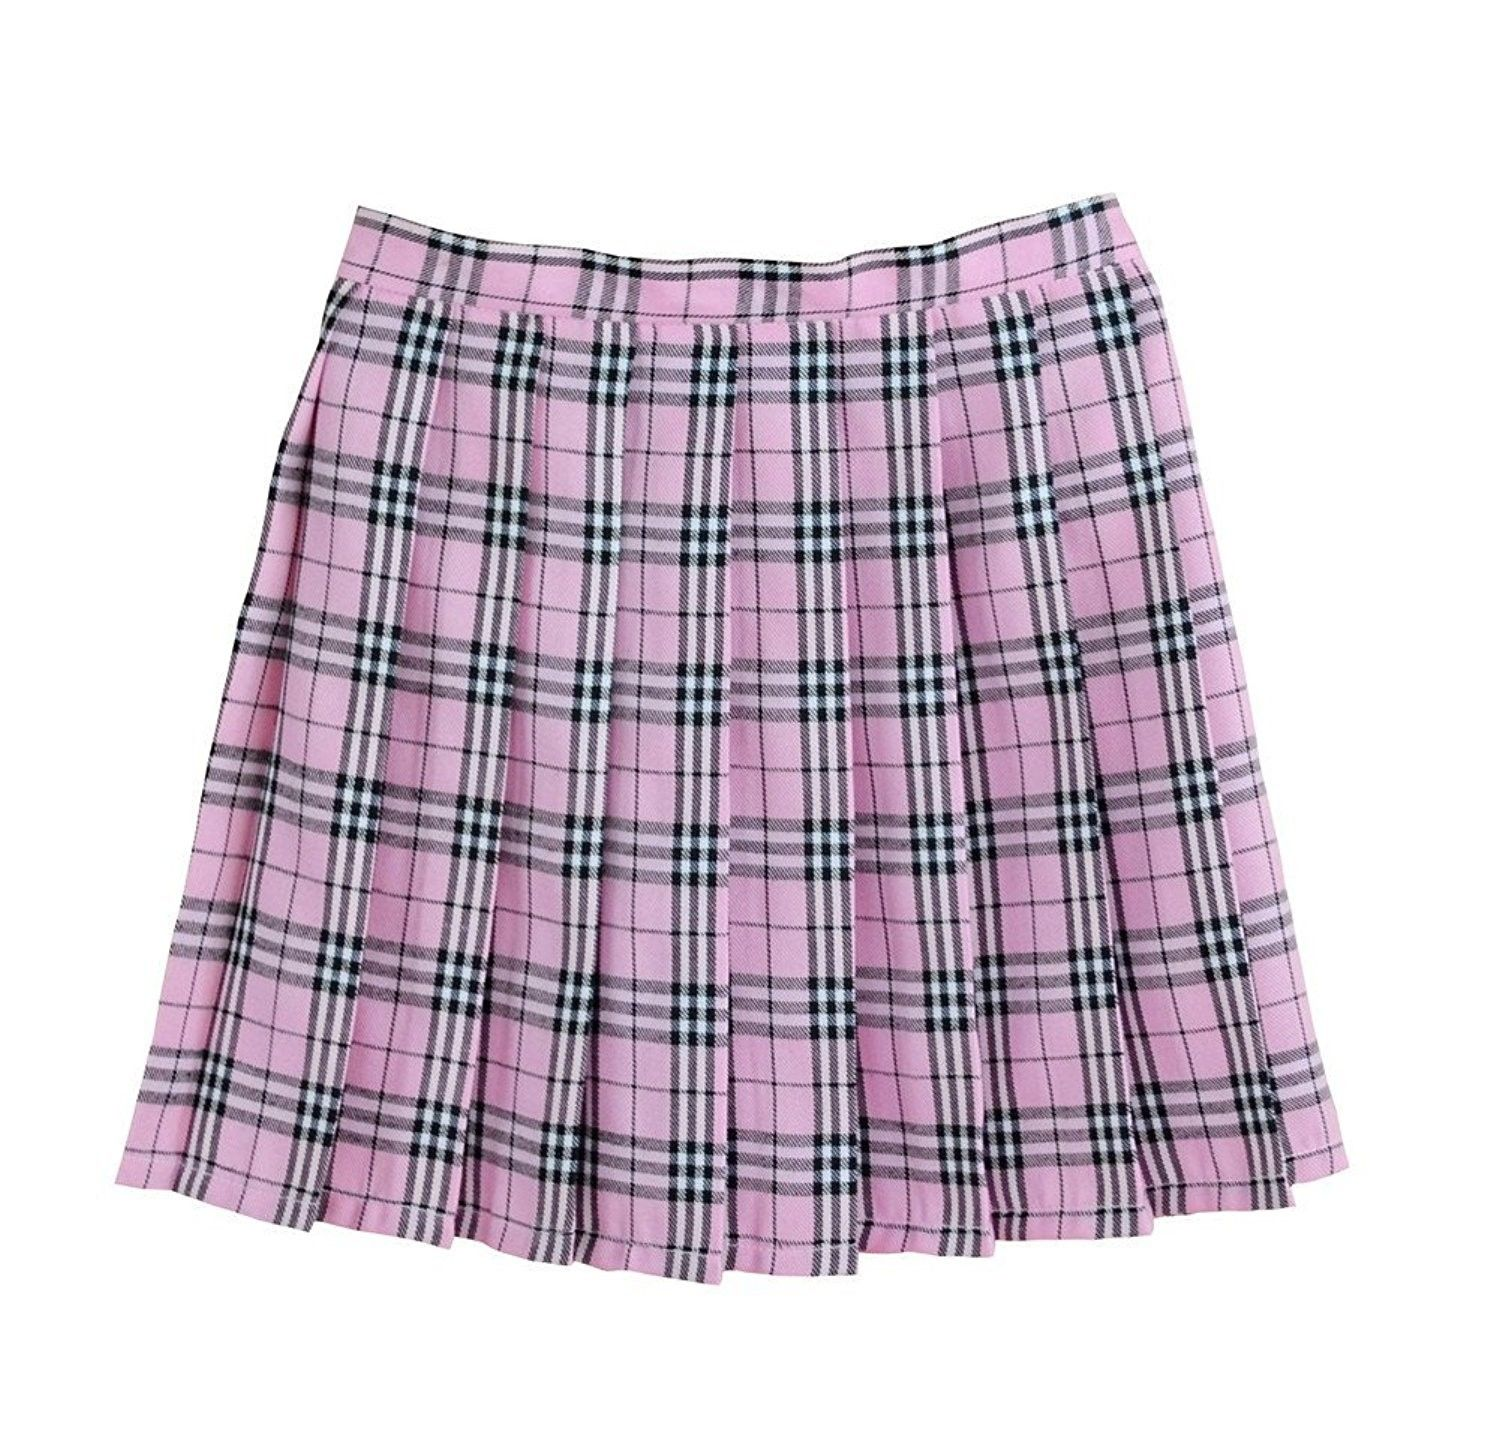 606dfb089f Women School Uniforms Plaid Pleated Mini Skirt - Pink - C212G4DIKOB,Women's  Clothing, Skirts #women #clothing #fashion #style #sexy #outfits #Skirts